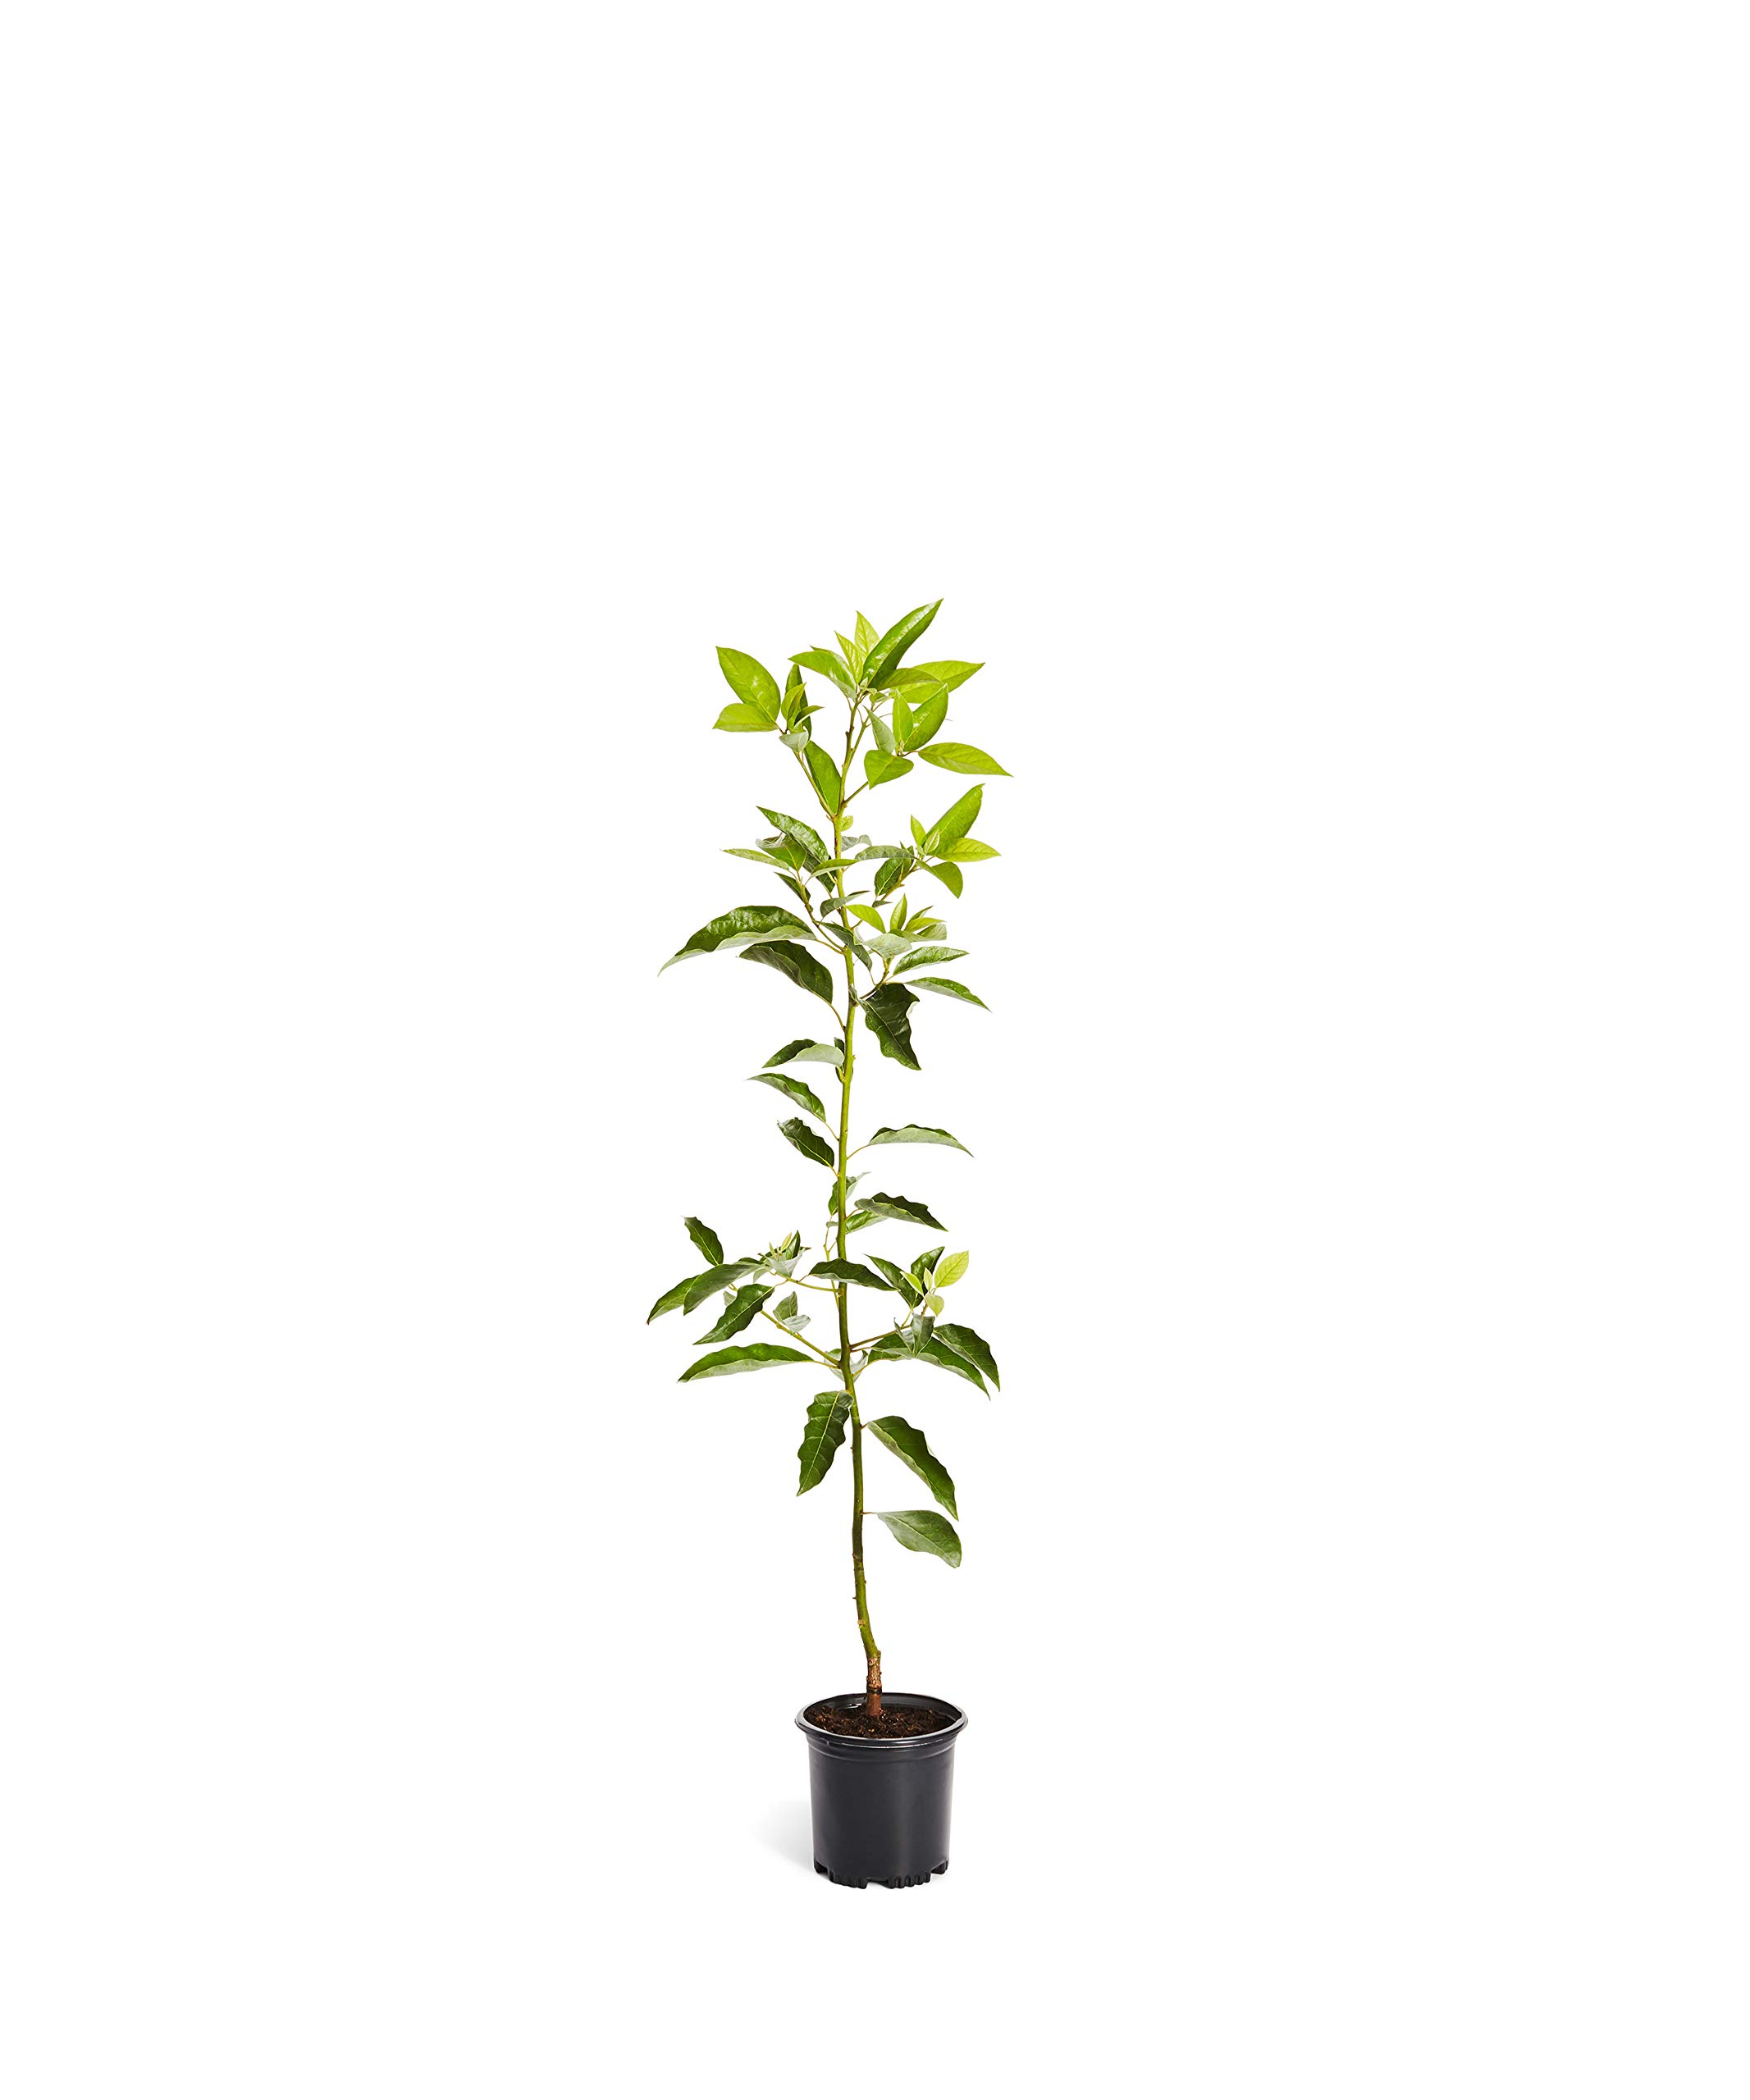 Cold Hardy Avocado Tree - Large Avocado Trees, Ready to Give Fruit The 1st Year - (Mexicola Grande) - Get Delicious Avocados Year Round from This Fruit Tree by Brighter Blooms Nursery - 2-3 ft.